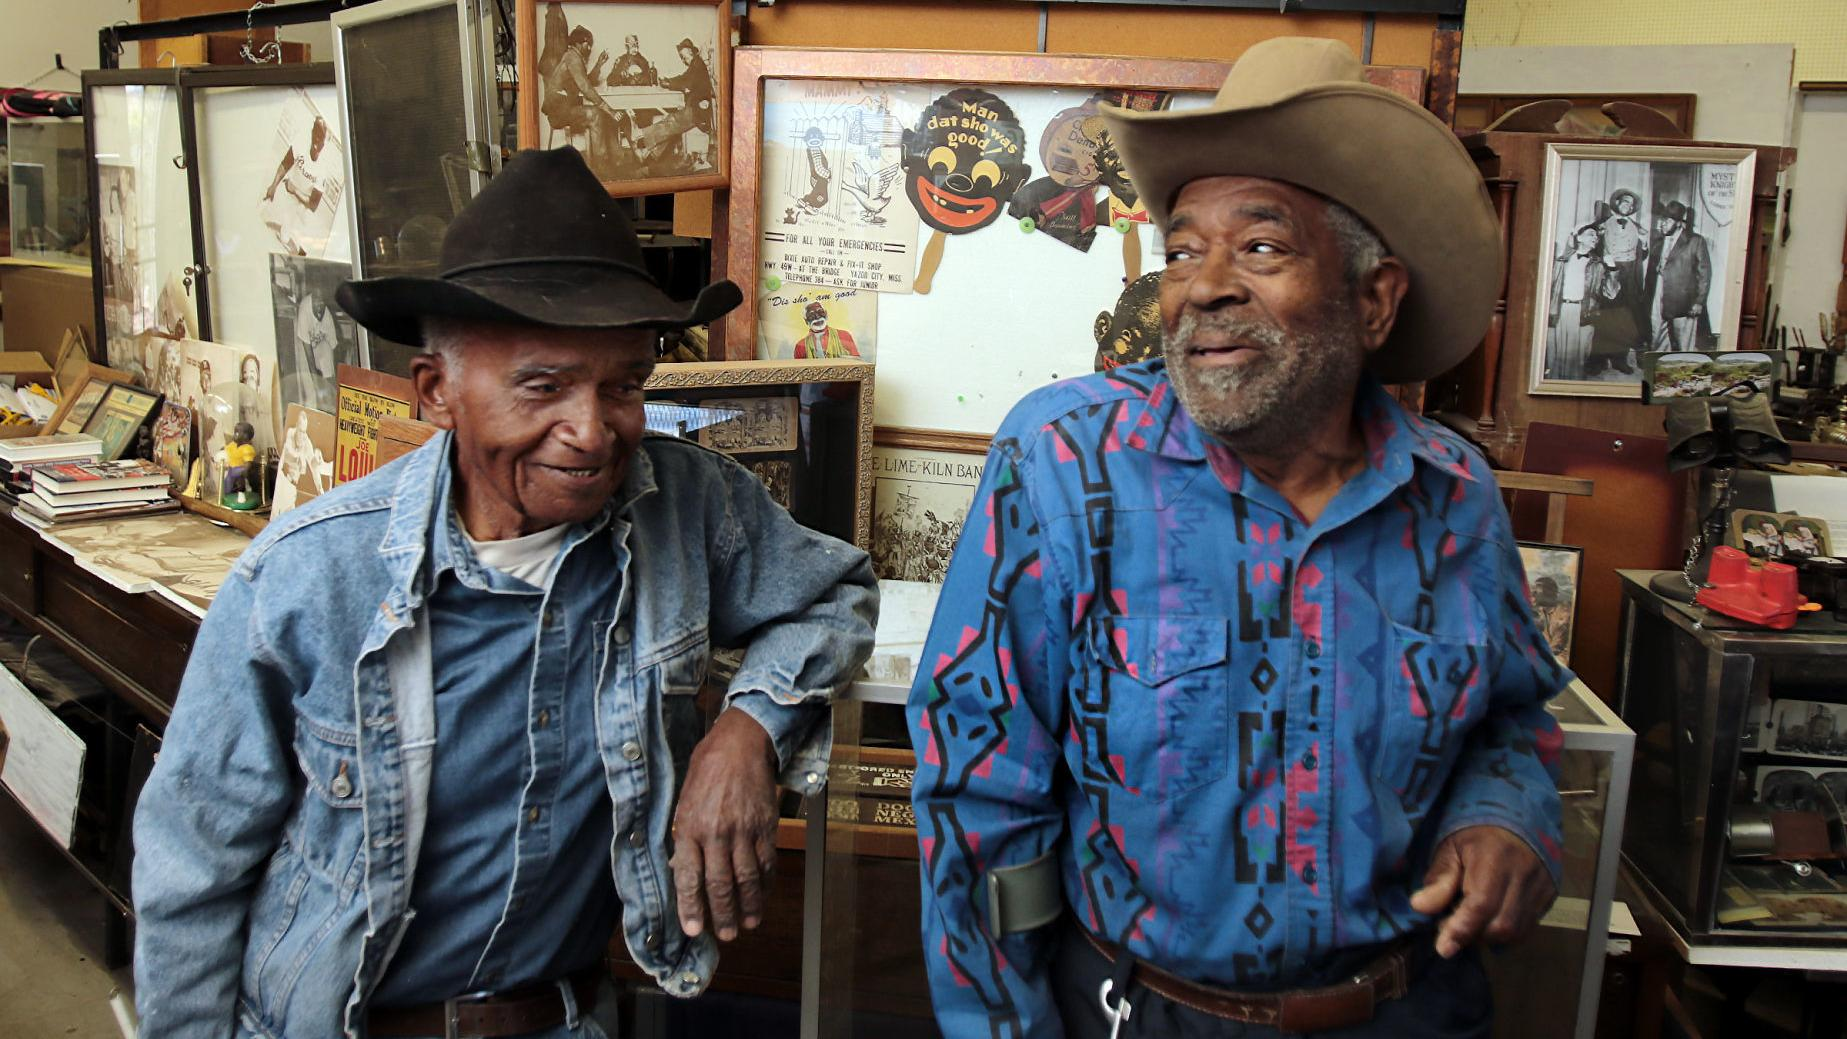 Neto's Tucson: South Park Avenue Afro-American museum is coming to an end